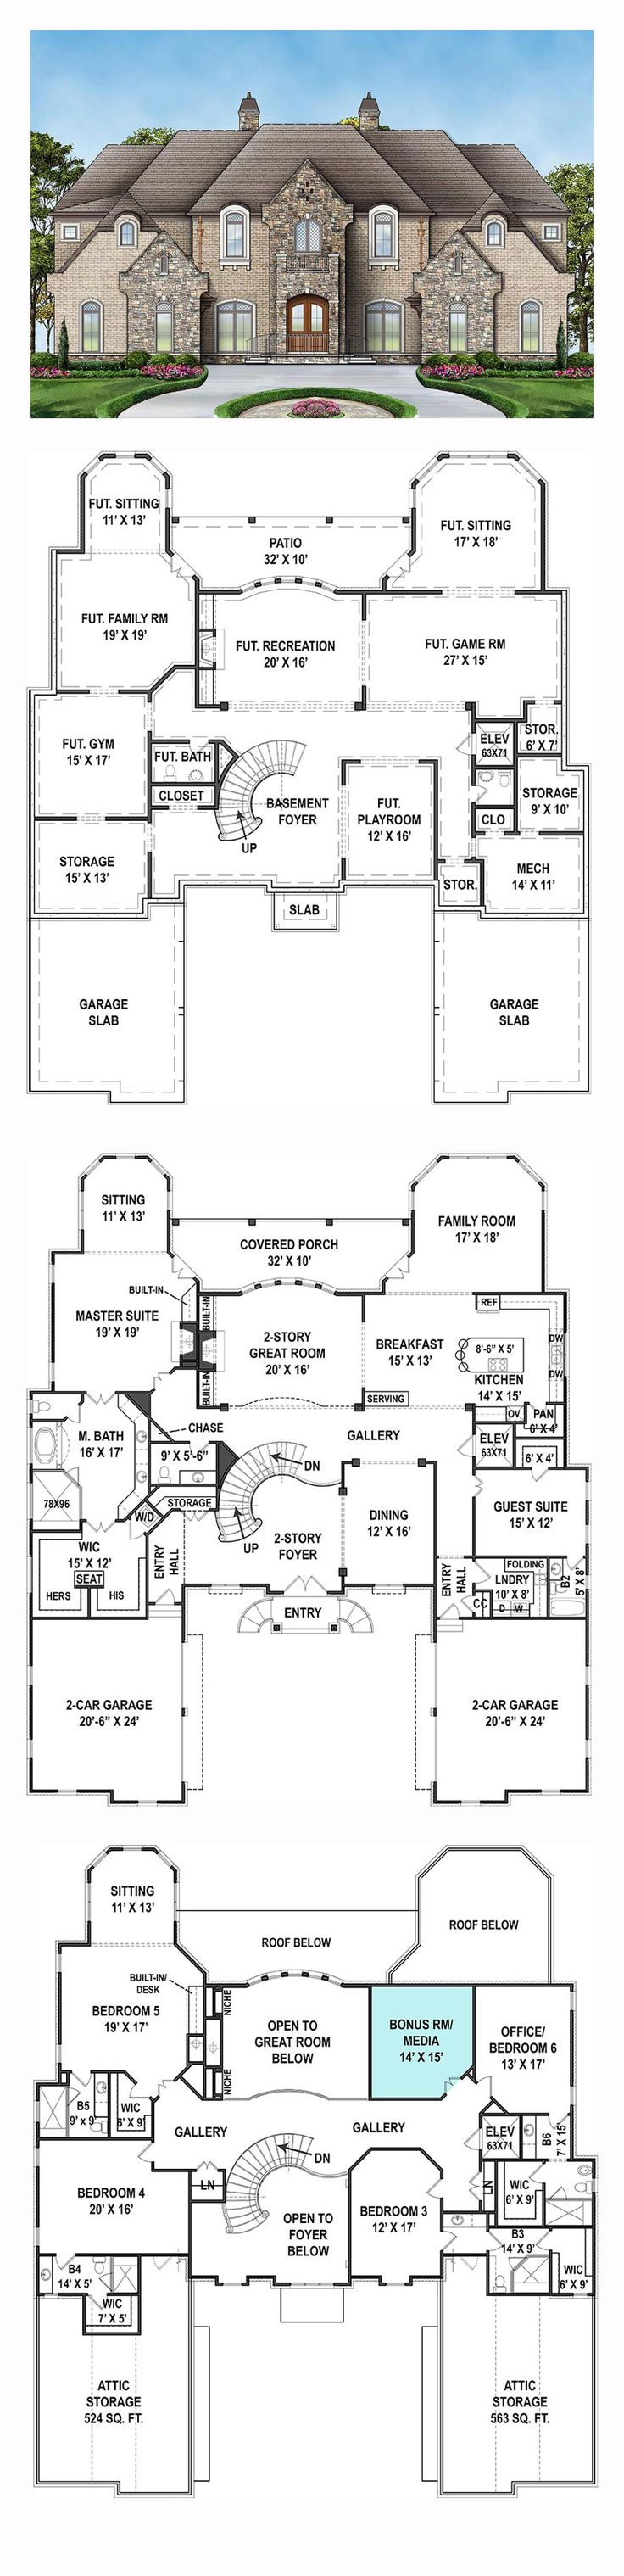 Best 25 family house plans ideas on pinterest sims 3 for Floor plans for luxury mansions